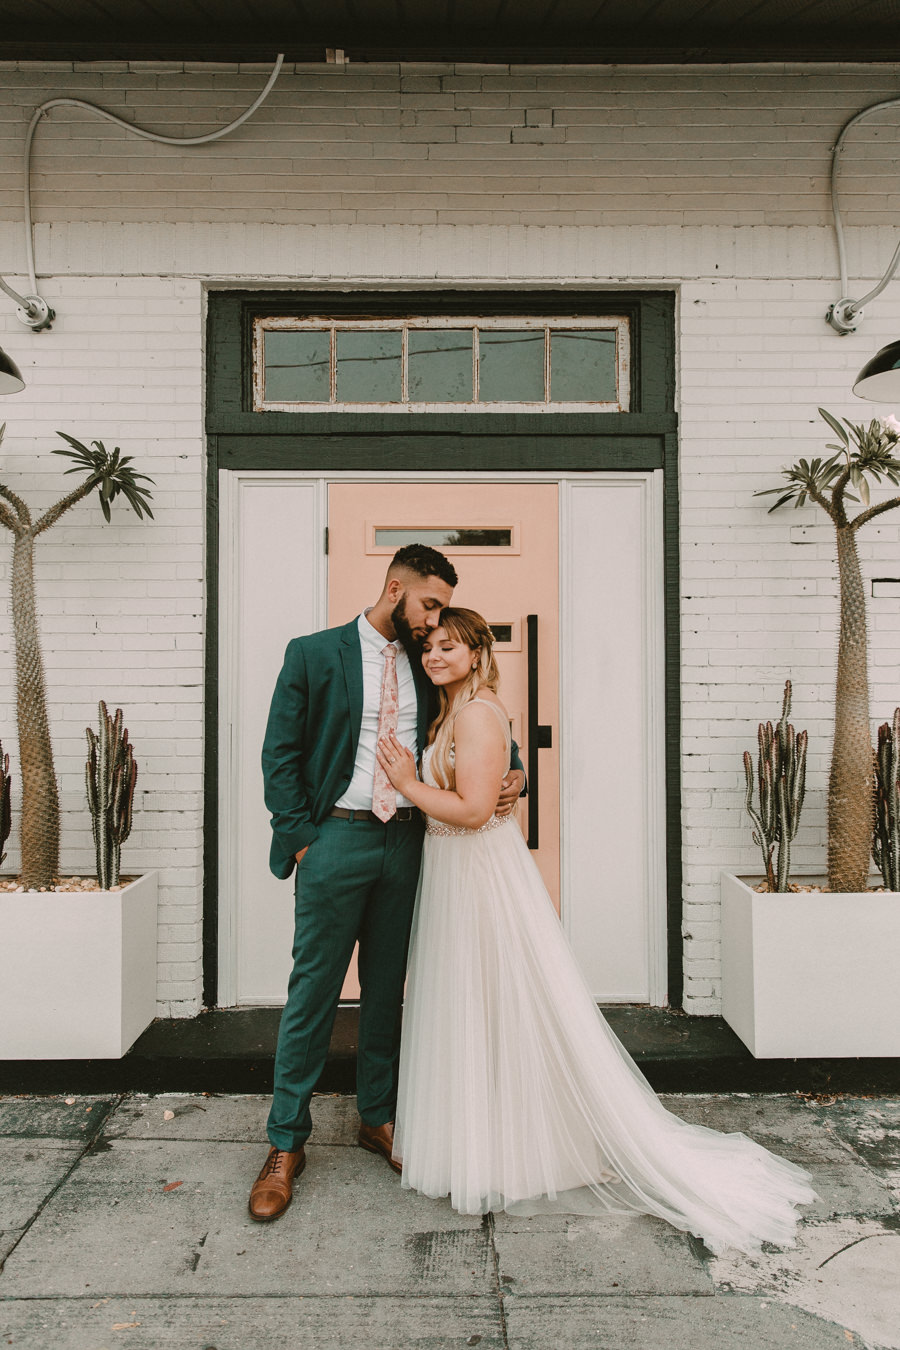 VeronicaandGarrett's Industrial Cavu Tampa Heights Wedding BHLDN gown Salt Block Hospitality Fancy Free Nursery Foundation Coffee-240.jpg